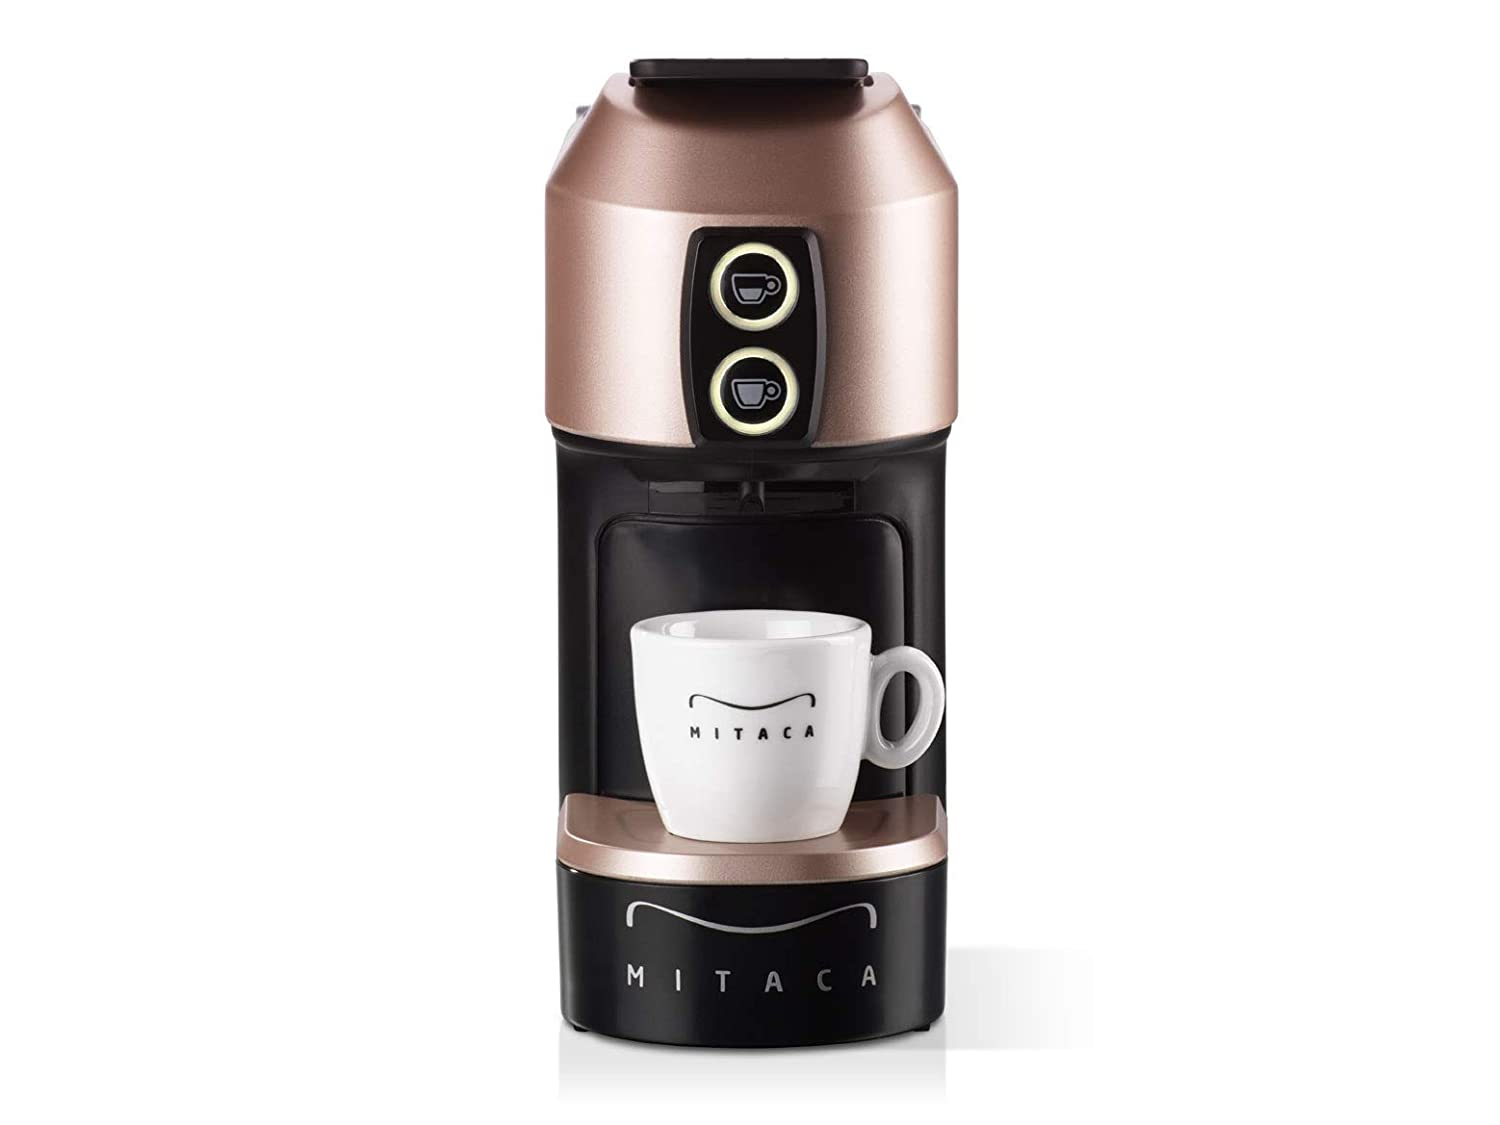 MITACA Espresso Machine M1 V2.0: Amazon.es: Hogar